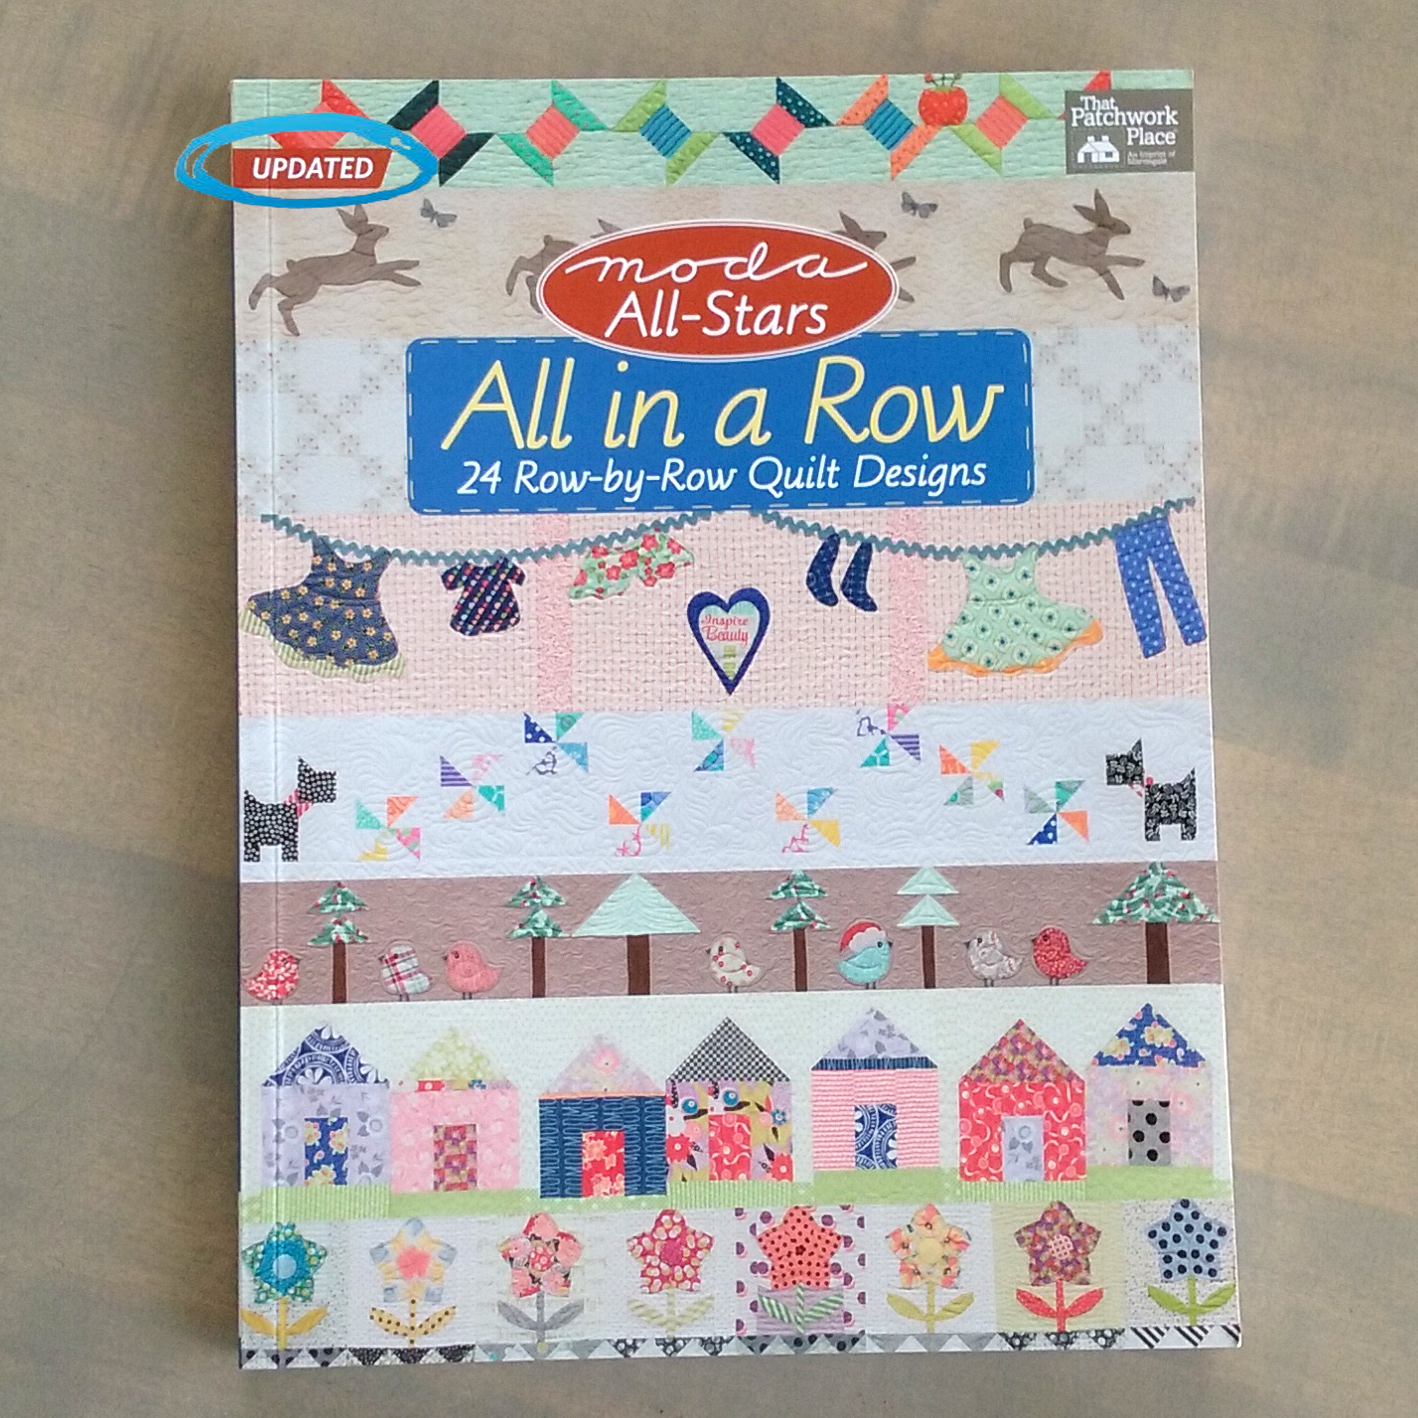 Moda-All-Stars-All-in-a-Row--replacement-copies